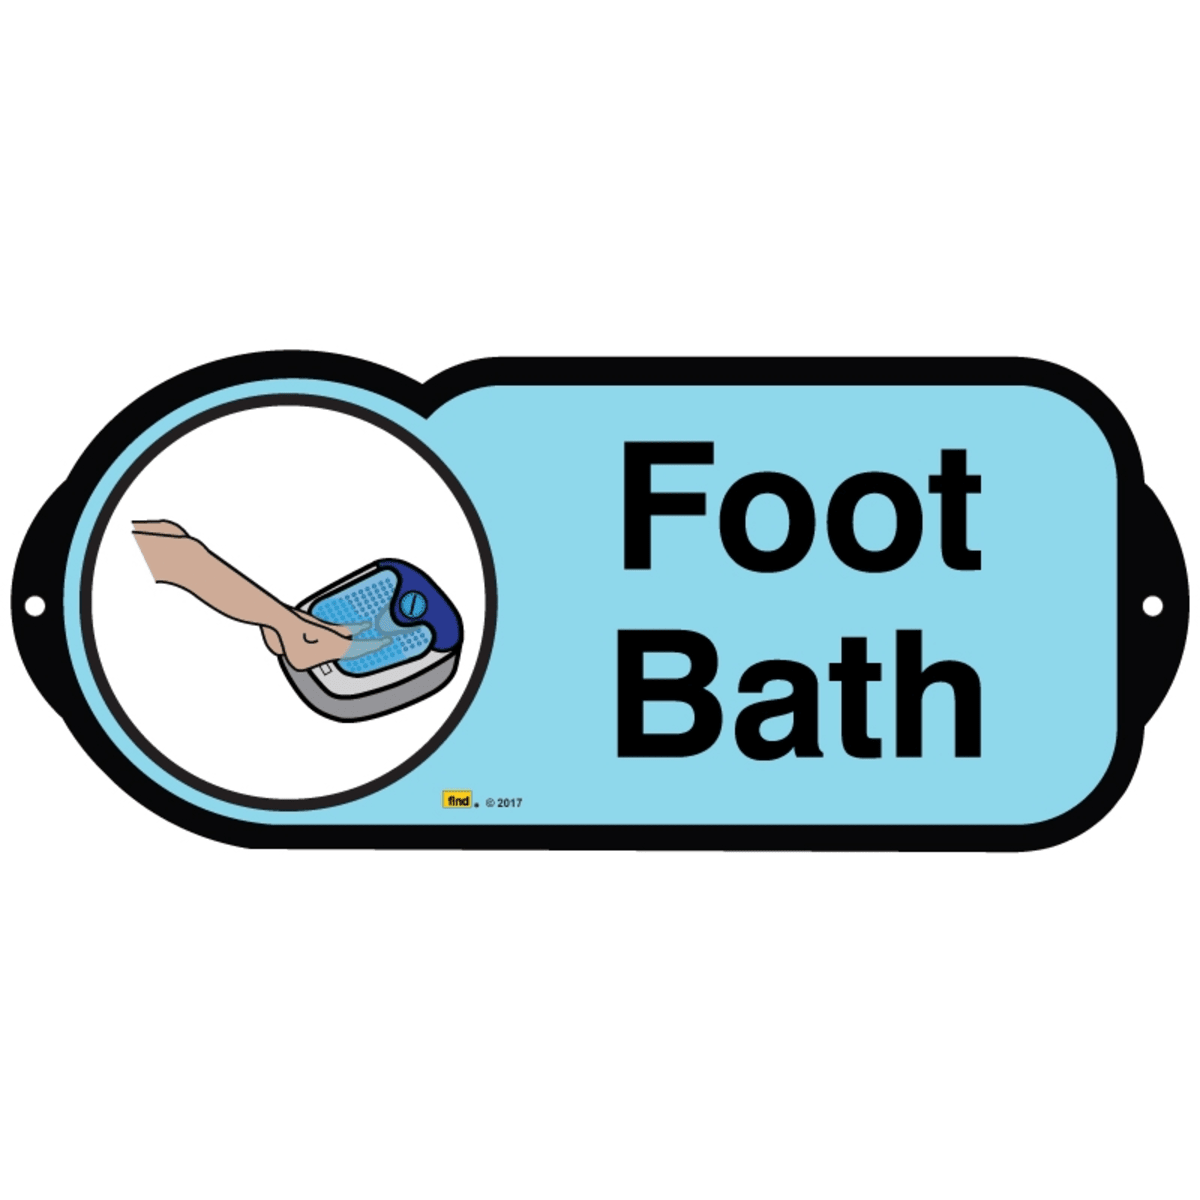 Foot Bath sign for autism and learning disabilities - signage